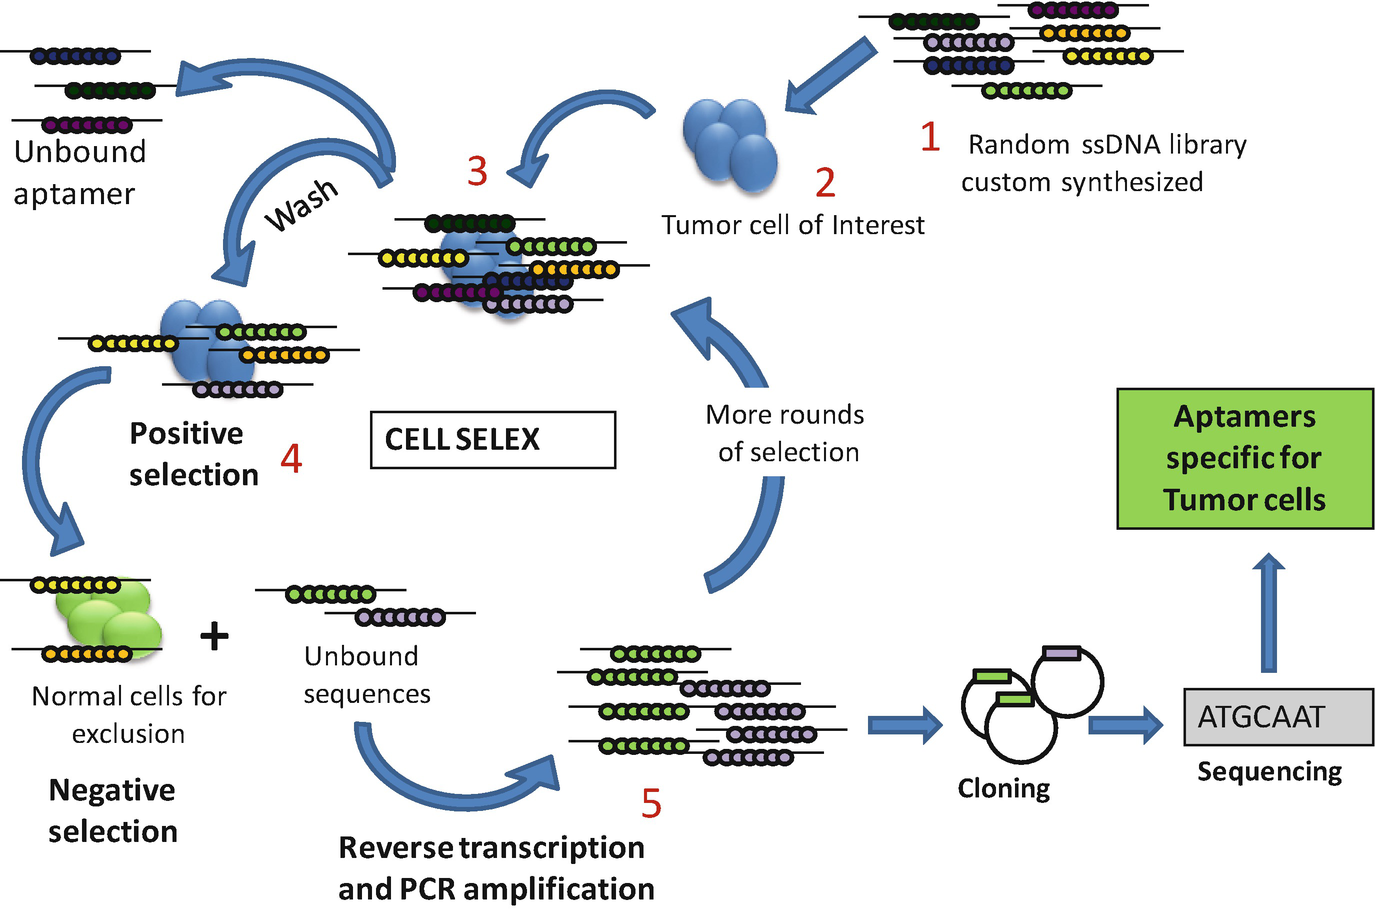 Aptamer as Therapeutics for Cancer with Focus on